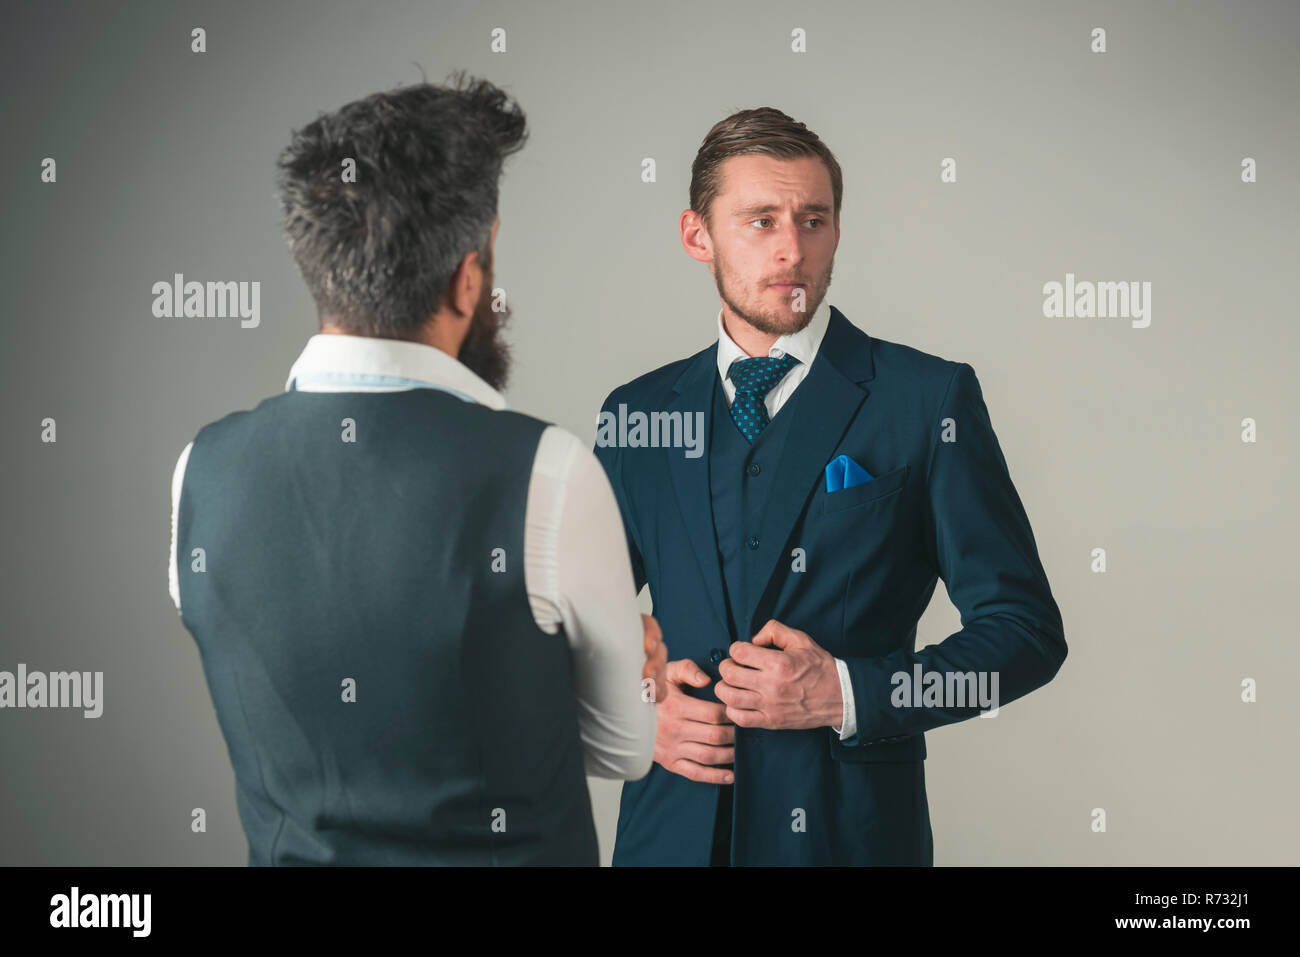 Every man should own a great suit. Fashion models in business relations. Men wear fashion business formal style. Friends in friendship relations. Bonds of friendship and cooperation among businessmen - Stock Image